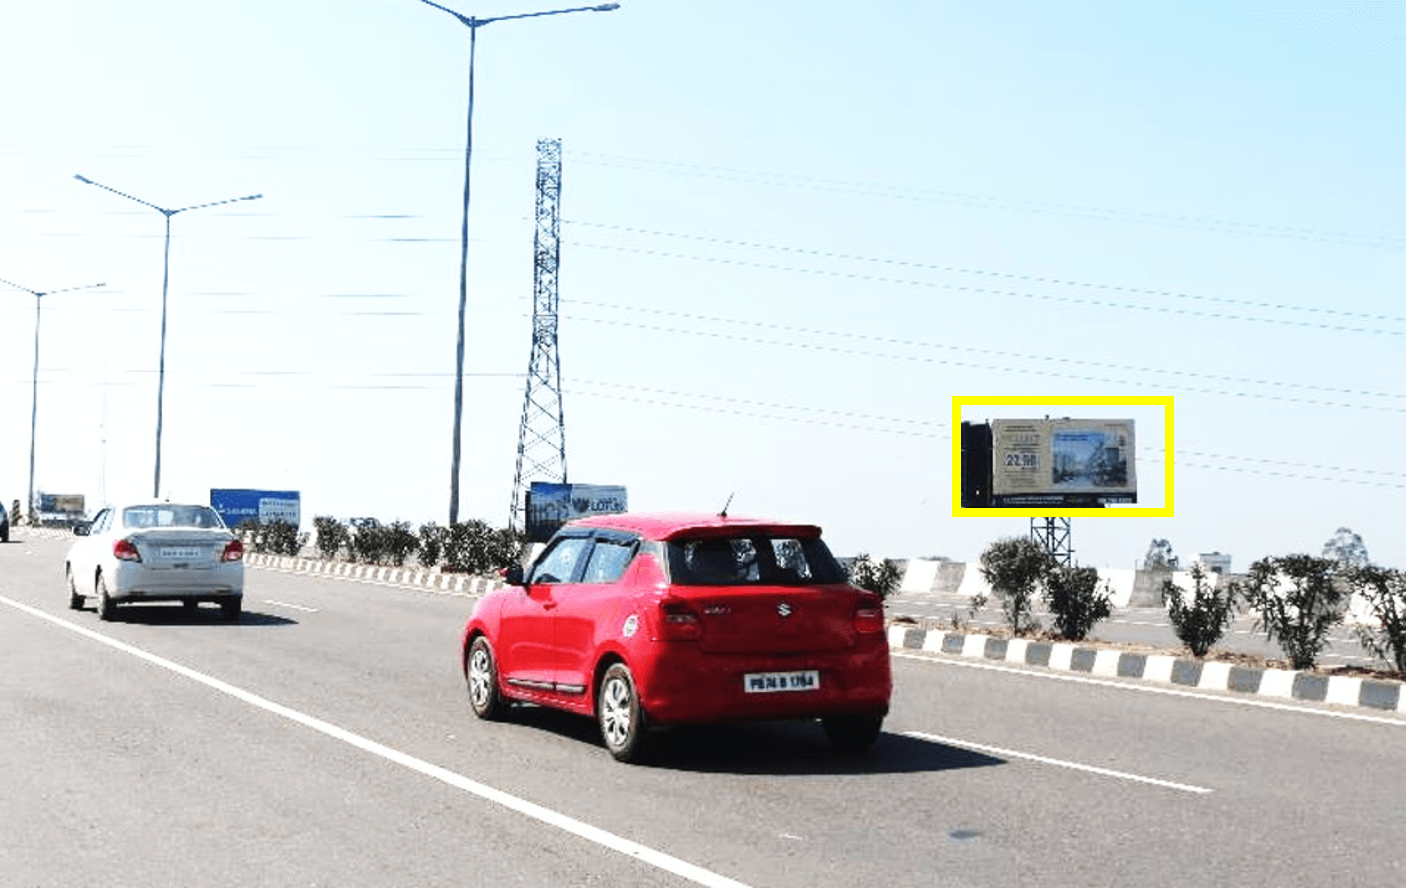 Unipole advertising at Banur Flyover Chandigarh To Patiala Highway, Banur